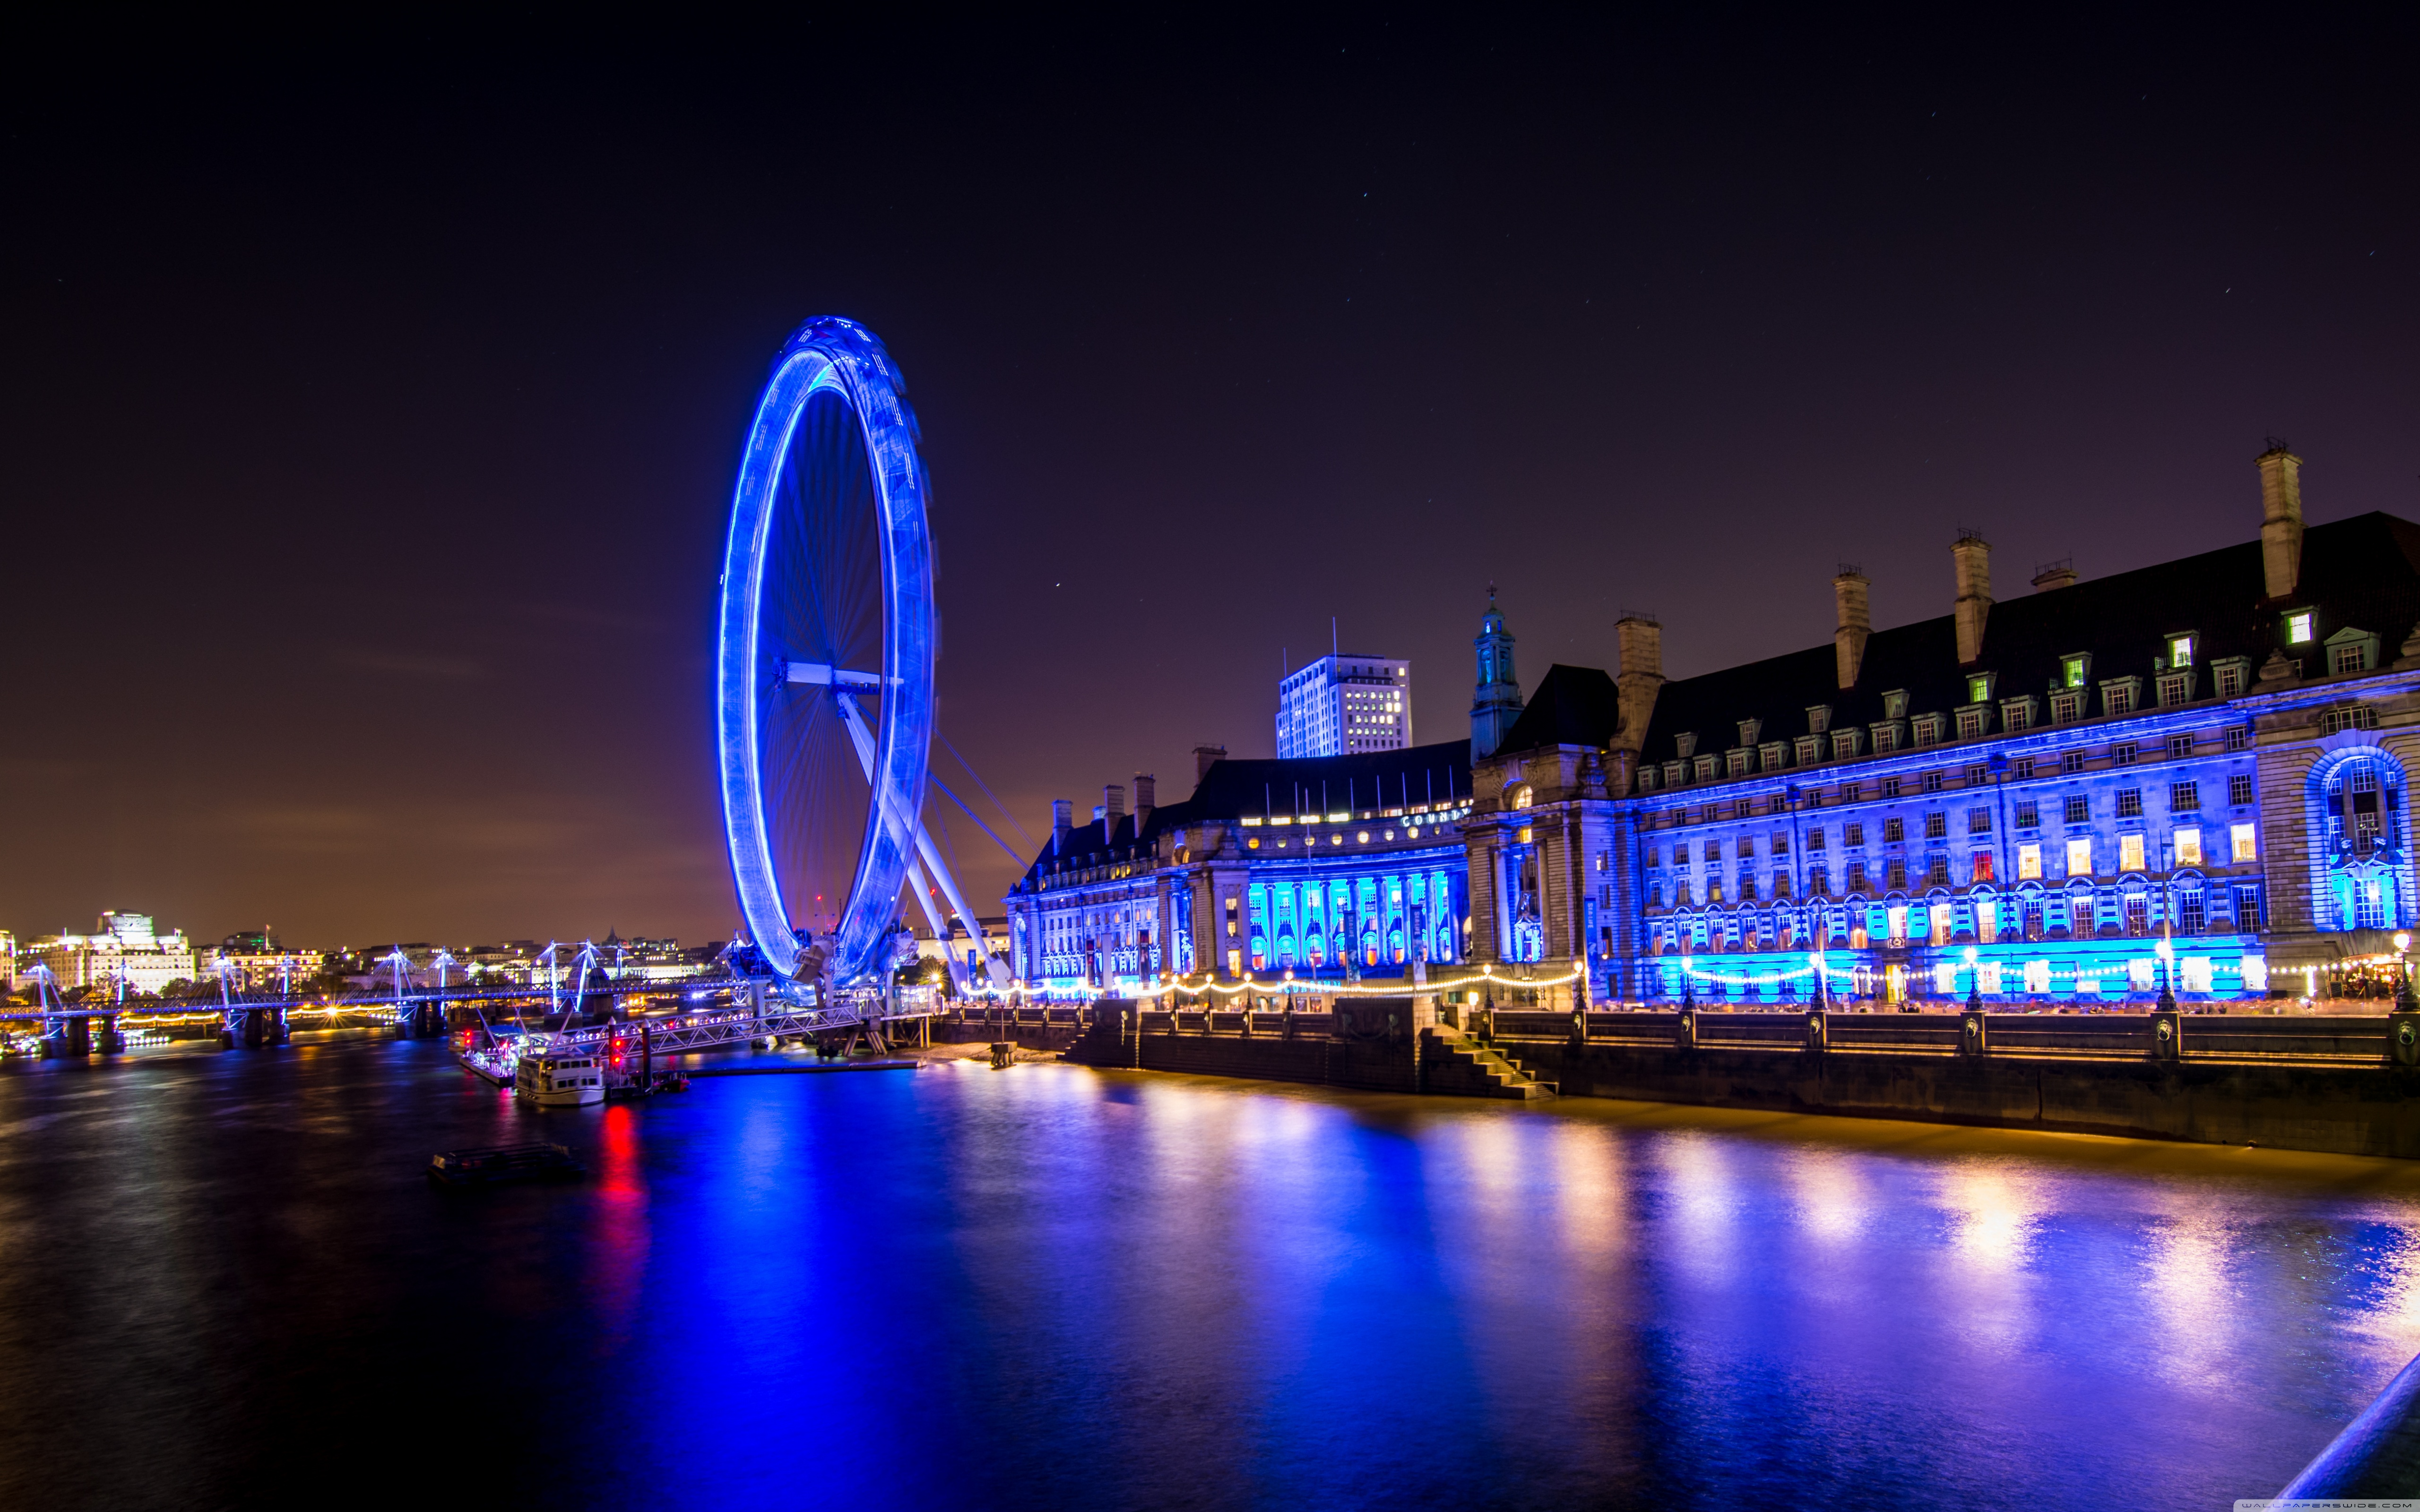 Photo Collection Qhd Wallpaper London At Night Mobile 102945 Hd Wallpaper Backgrounds Download